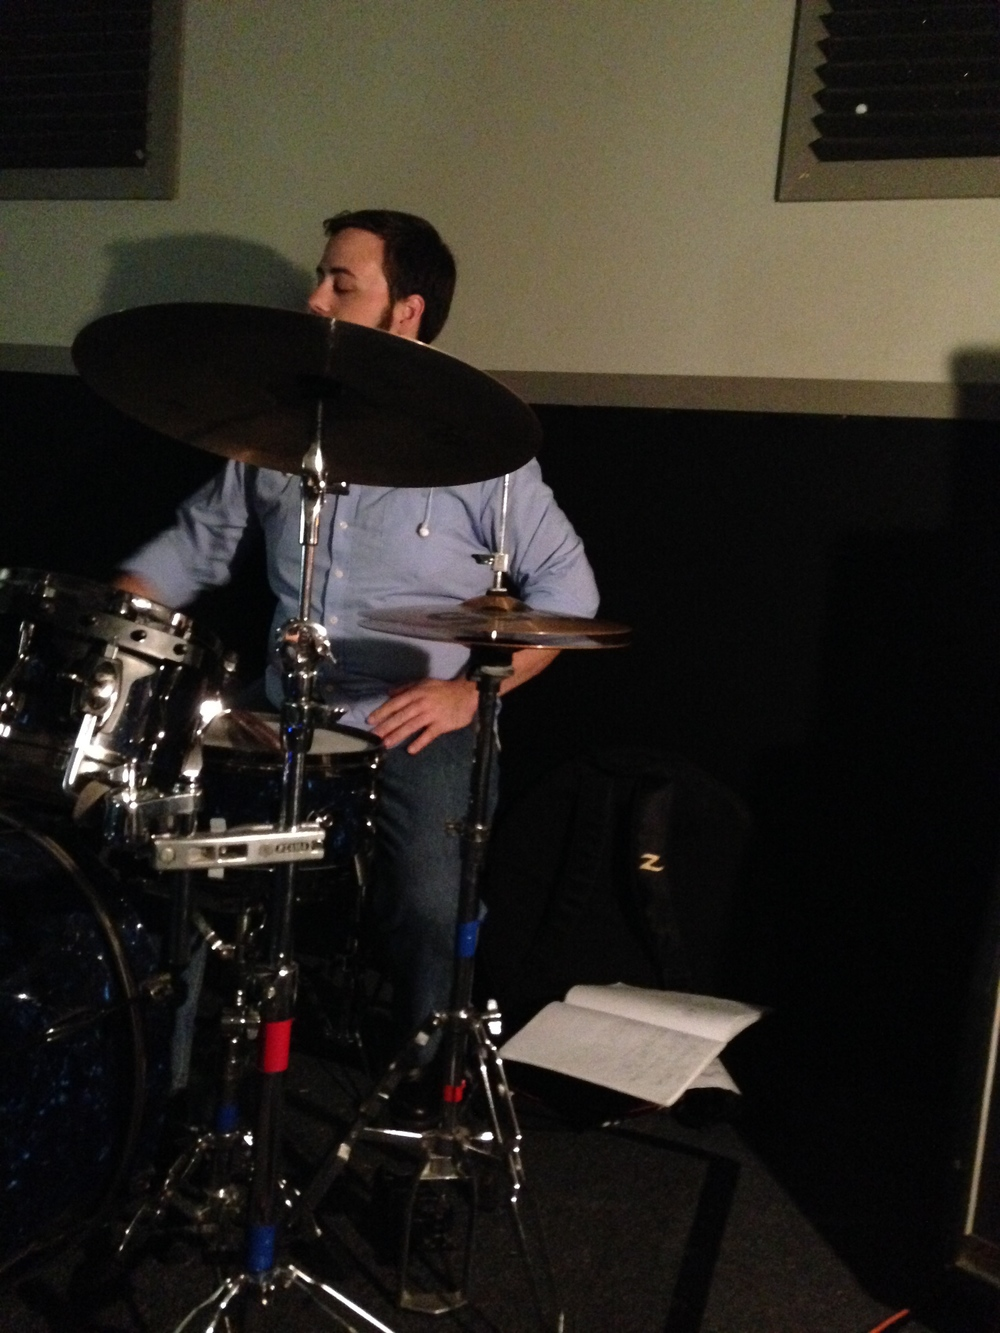 Playing Drums at a Rock Band Rehearsal.